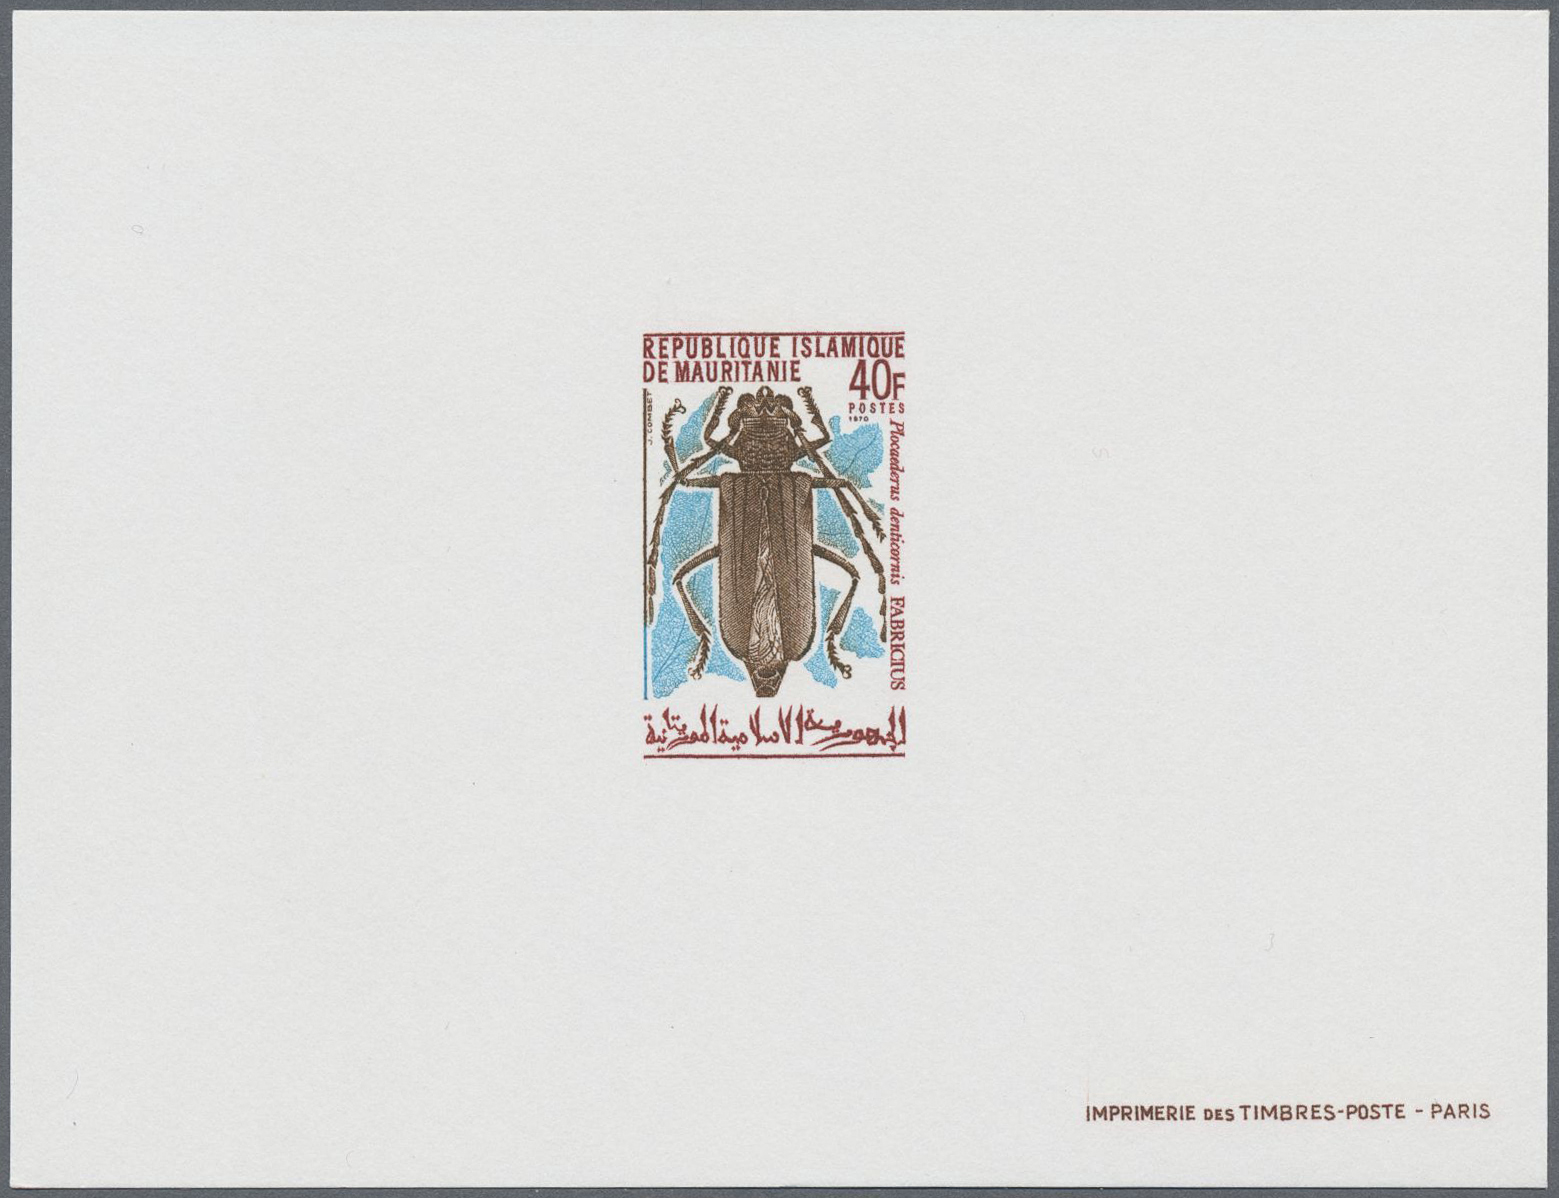 Lot 12589 - thematik: tiere-insekten / animals-insects  -  Auktionshaus Christoph Gärtner GmbH & Co. KG Single lots Philately Overseas & Europe. Auction #39 Day 4